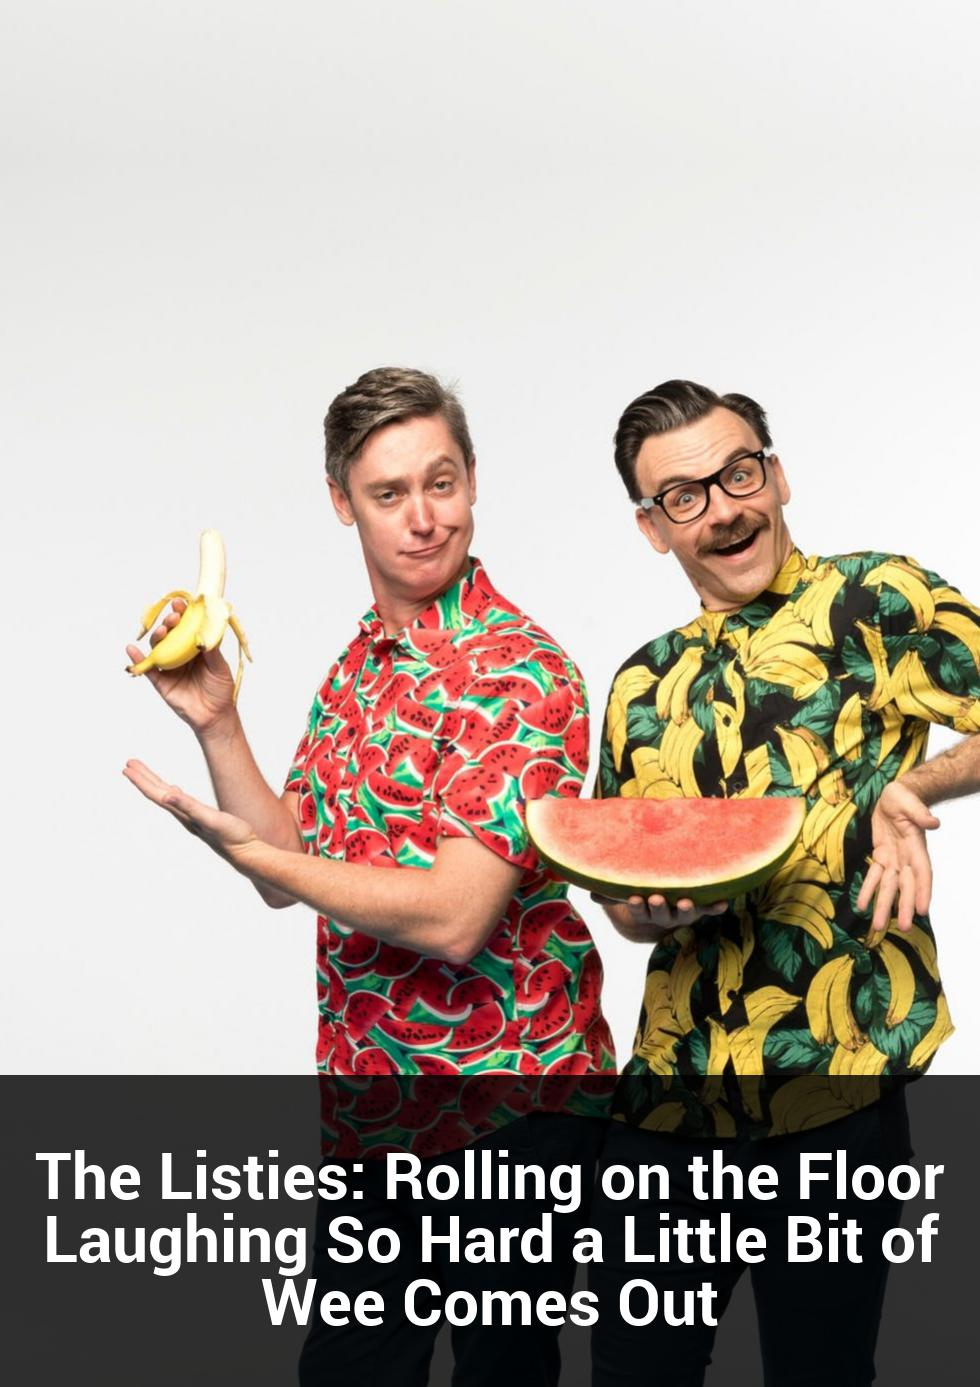 The Listies: Rolling on the Floor Laughing So Hard a Little Bit of Wee Comes Out at Spiegeltent Wollongong